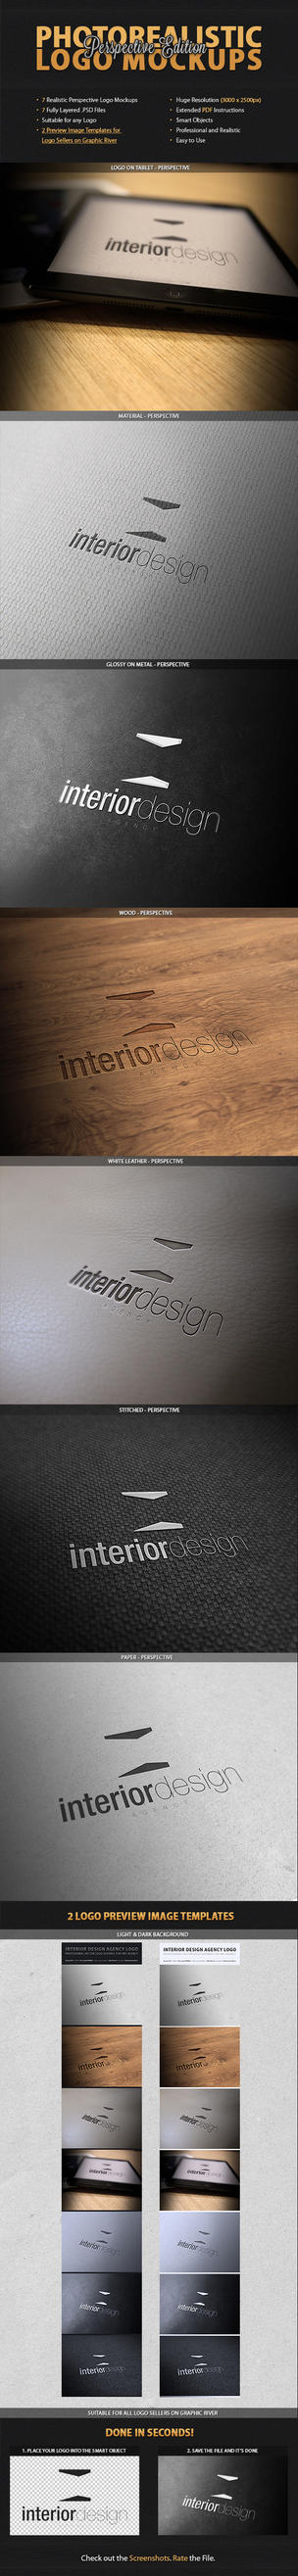 7 Perspective Logo Mockups by Jones500